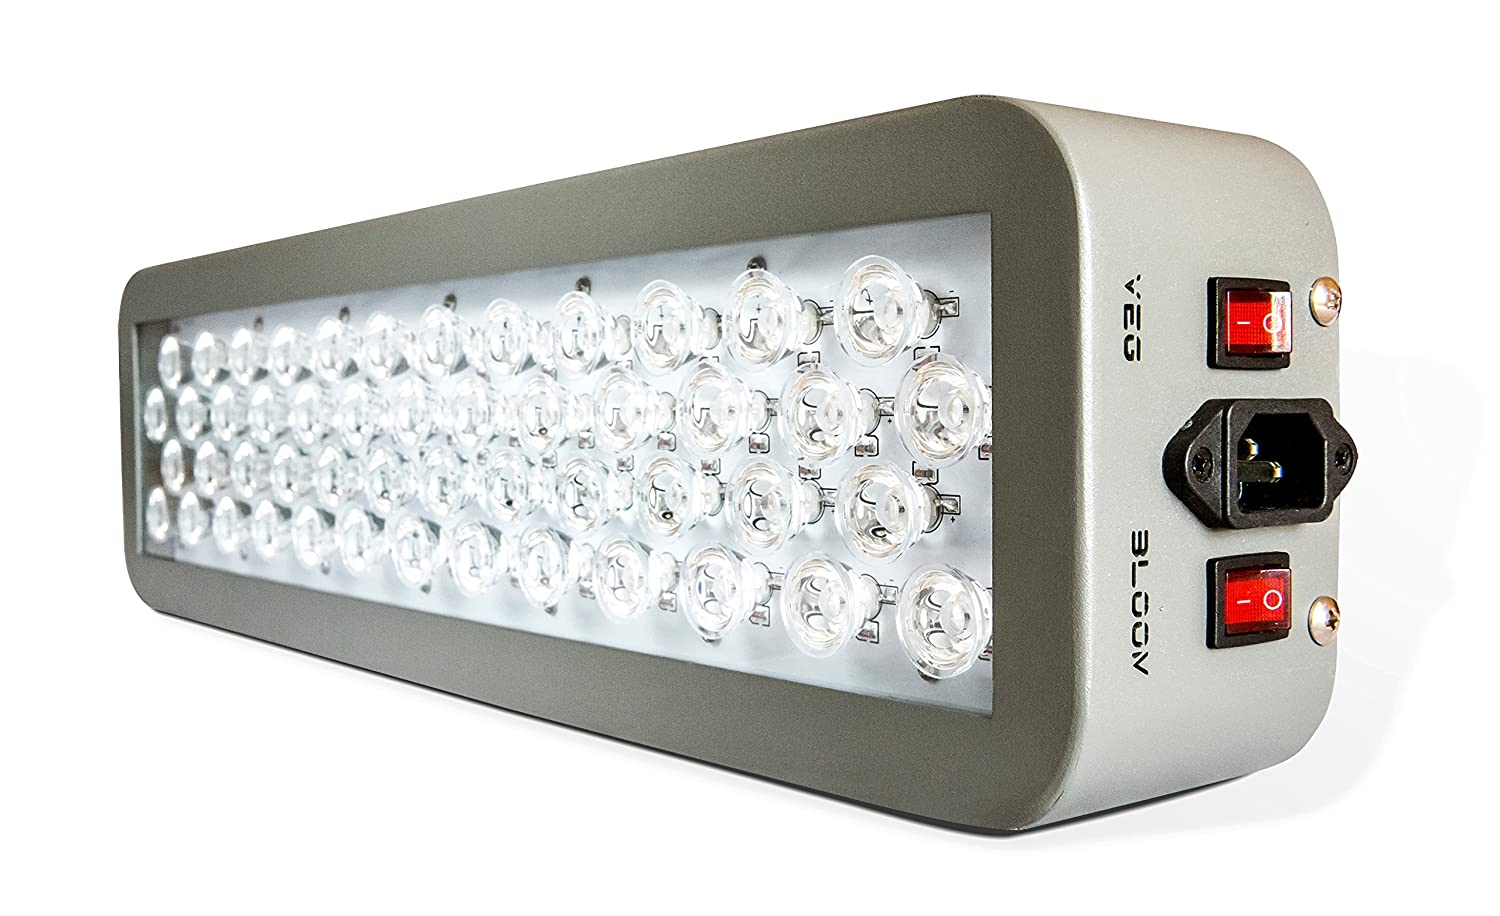 Advanced Platinum Series P150 150w 12-band LED Grow Light - DUAL VEG/FLOWER FULL SPECTRUM PlatinumLED Grow Lights